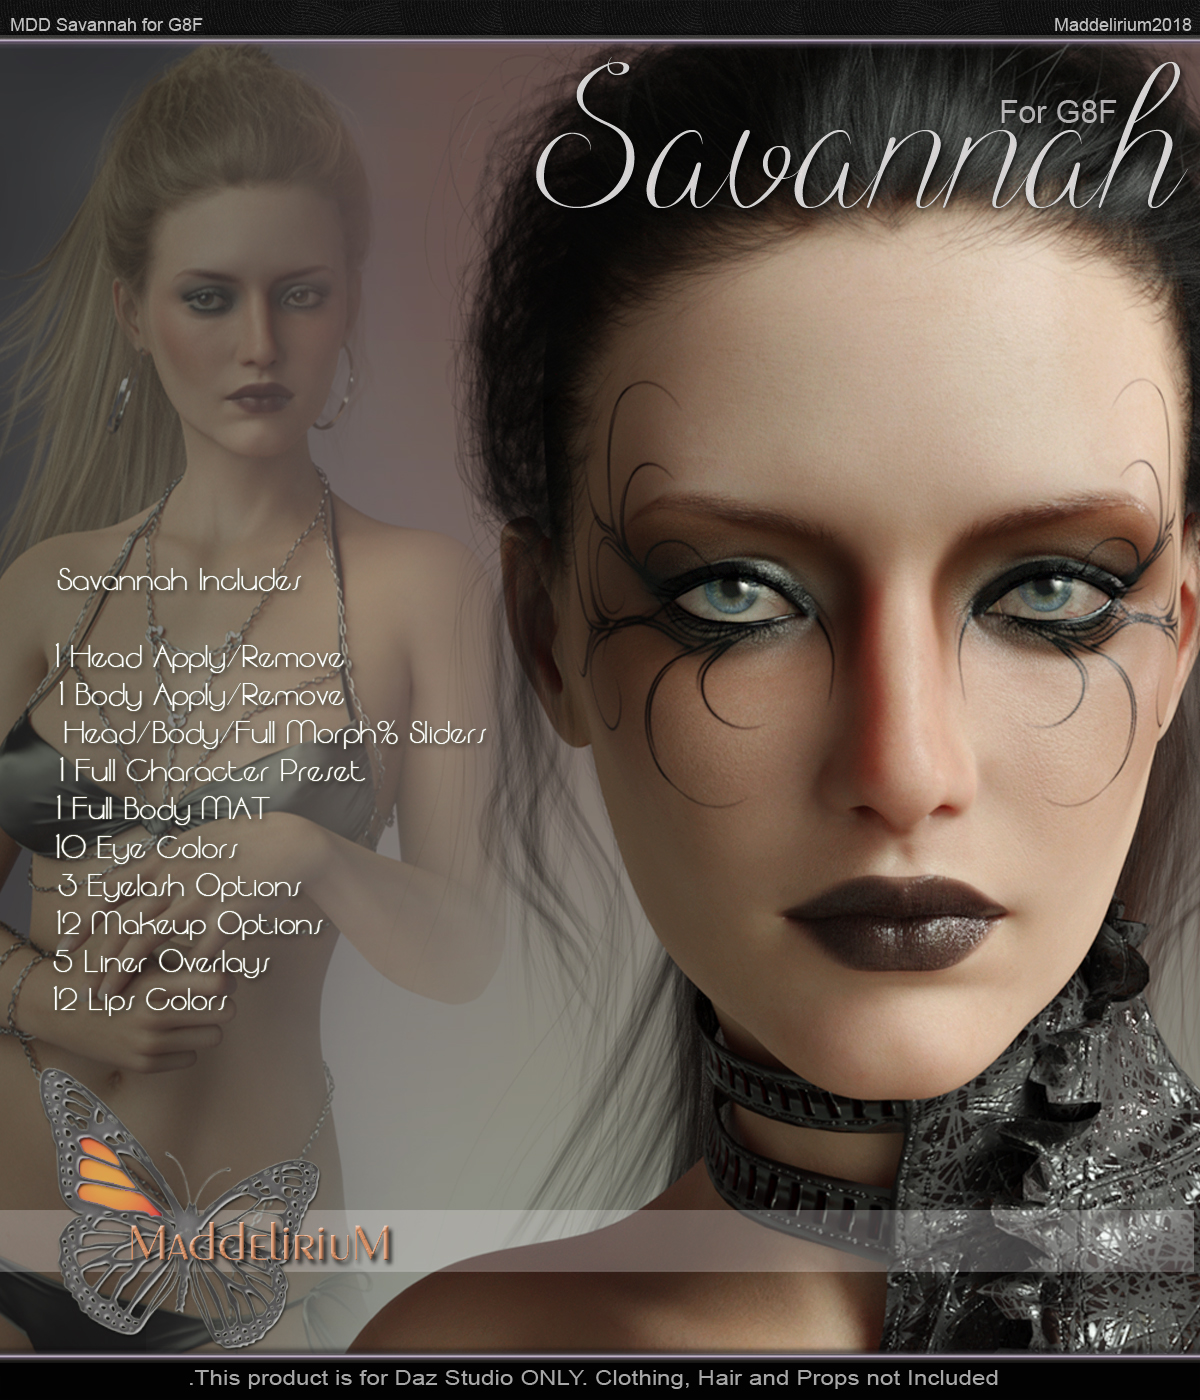 MDD Savannah for G8F